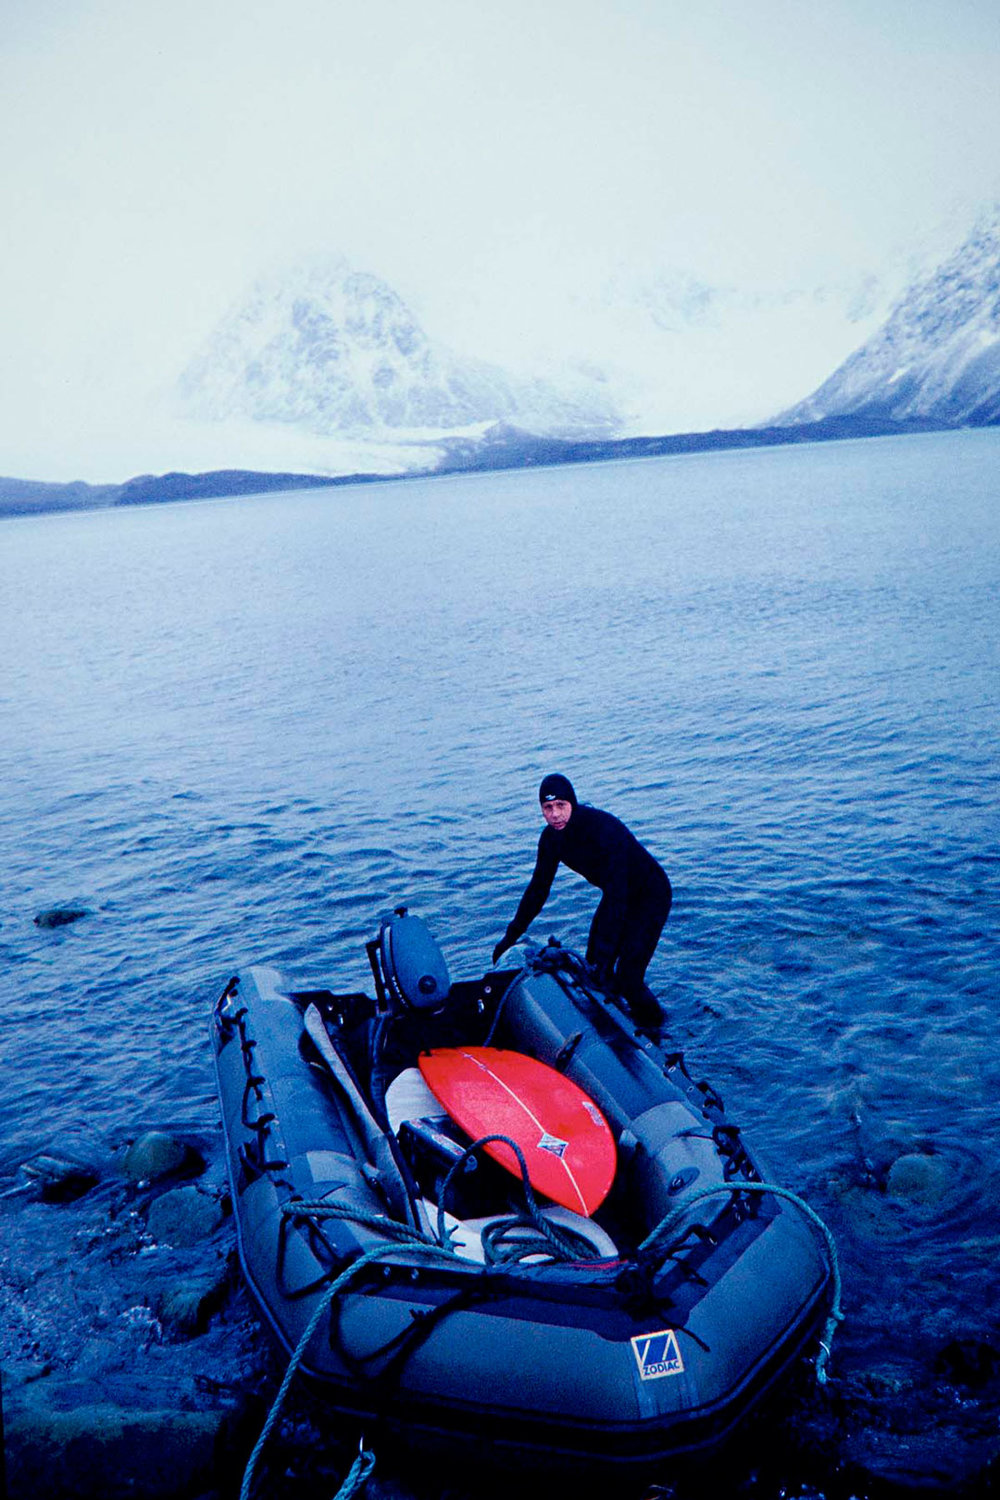 Jørn Dybdahl was living at latitude 78° north at Ny-Alesund in Spitsbergen, the northernmost settlement in the world c.2002